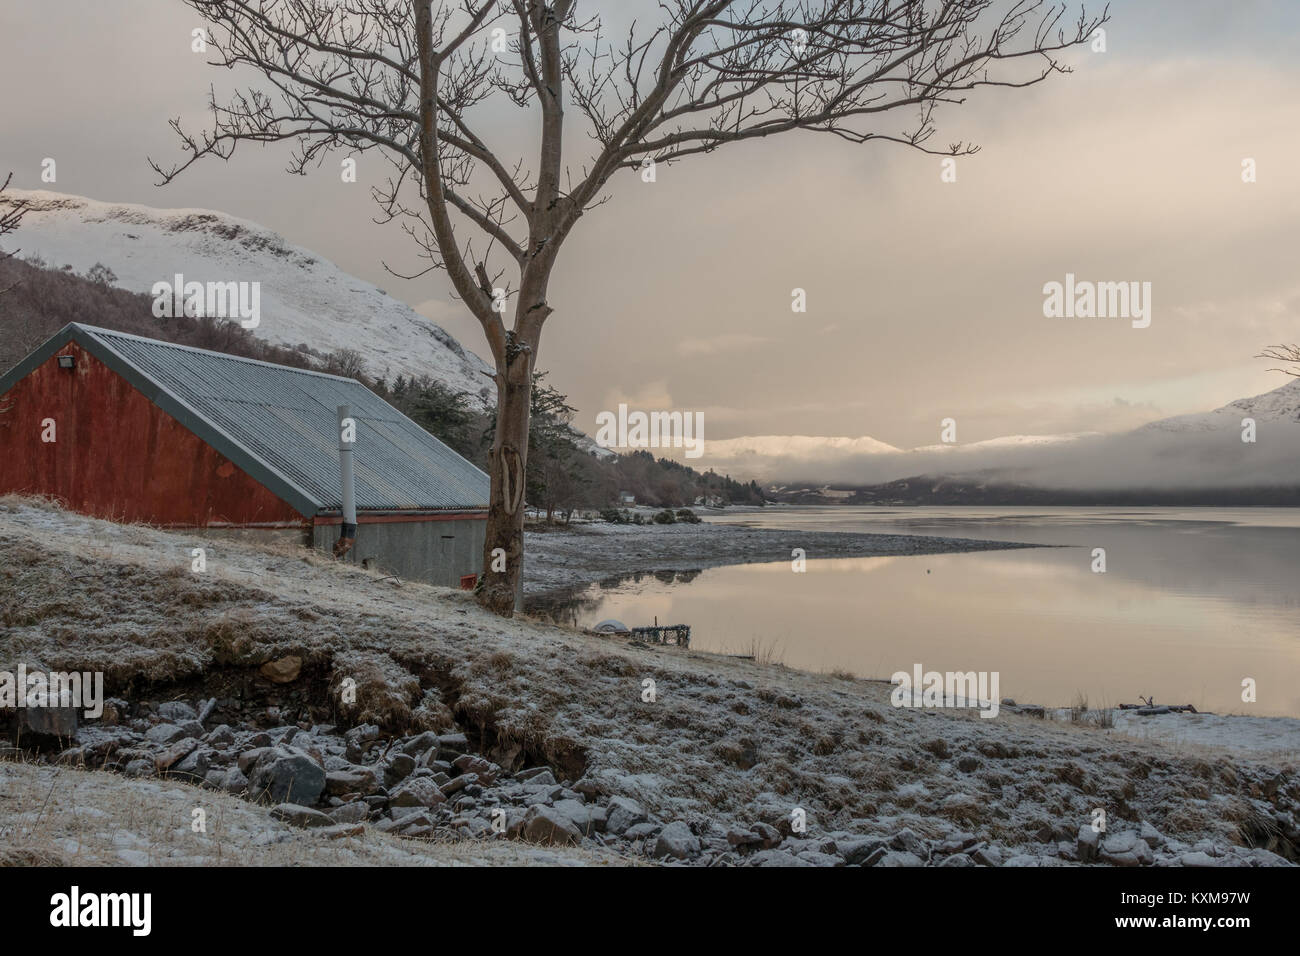 View across Loch Broom to the snowy mountains from the snow-covered shore and boathouse at Letters, Ullapool, Scottish - Stock Image